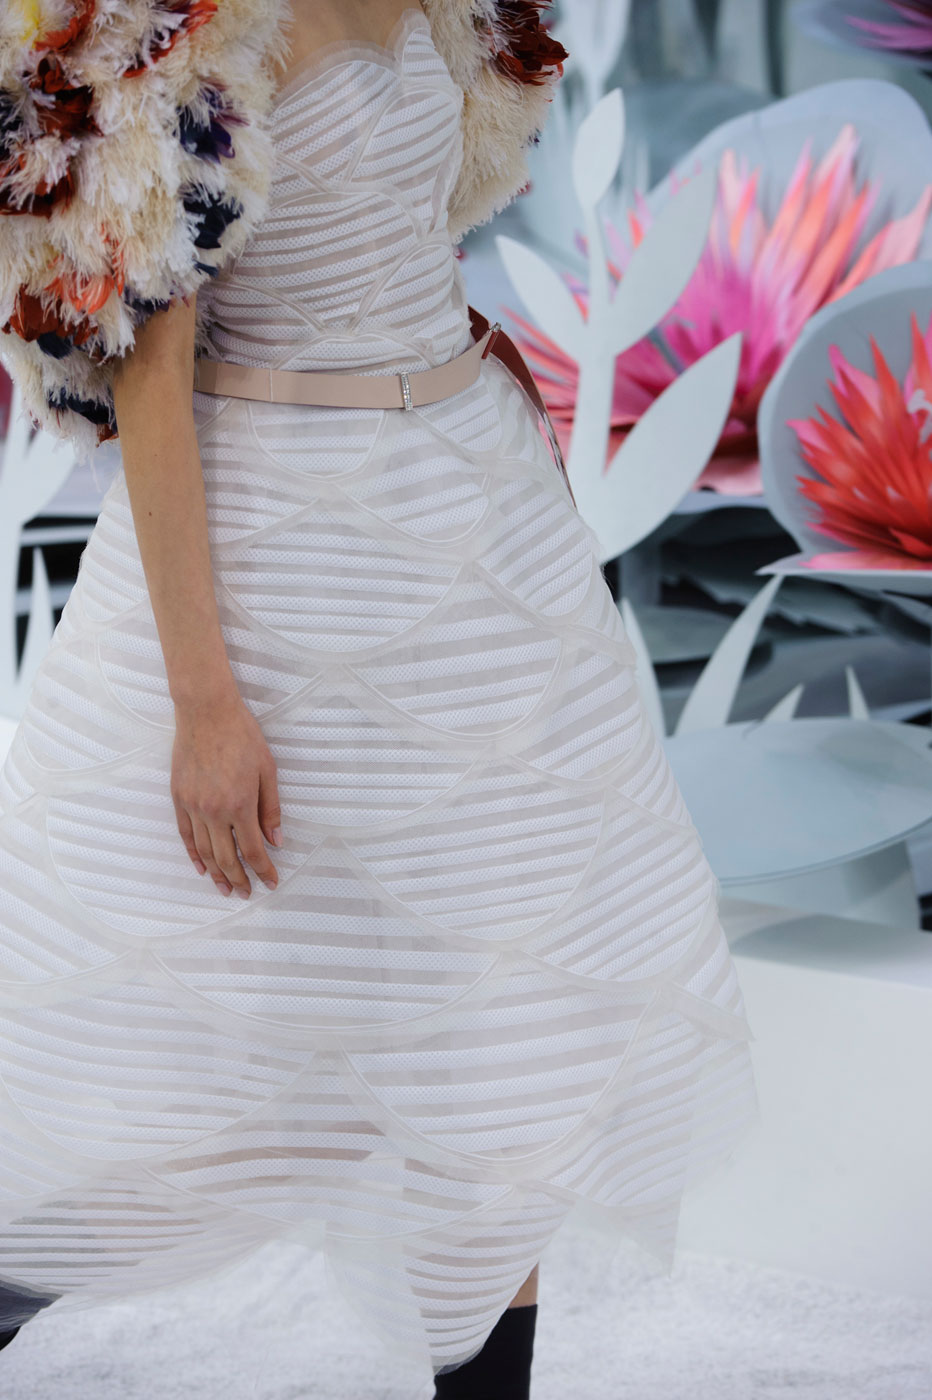 Chanel-fashion-runway-show-close-ups-haute-couture-paris-spring-summer-2015-the-impression-131